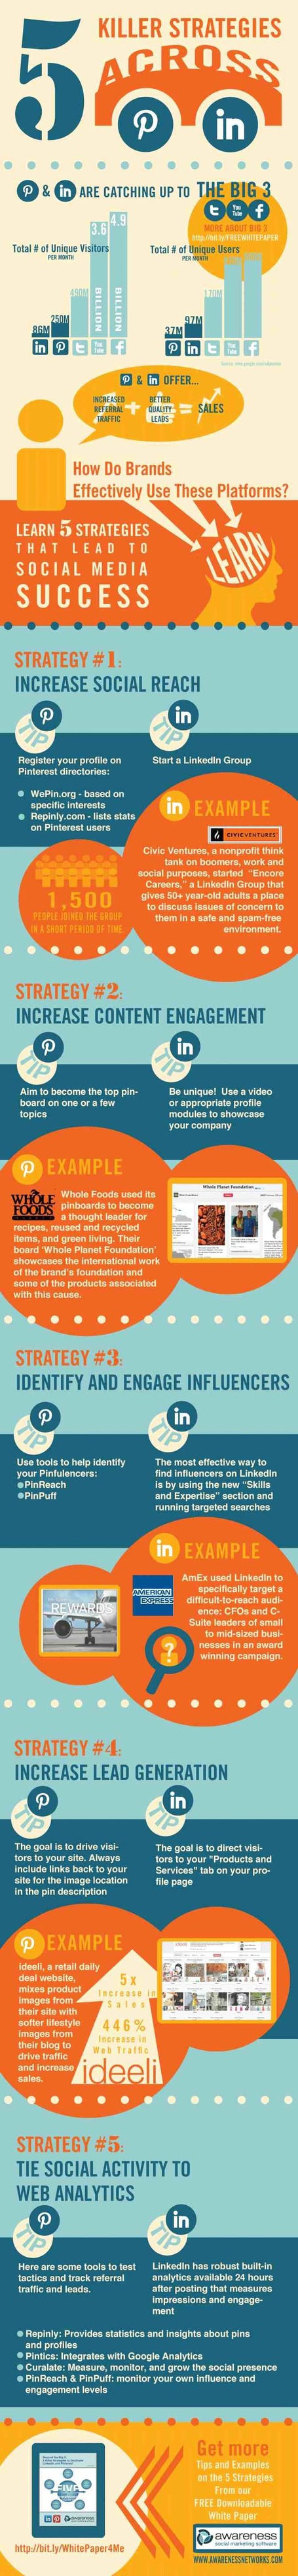 Beyond The Big 3: Strategies For Brands To Dominate Pinterest And LinkedIn | Online-Communities | Scoop.it